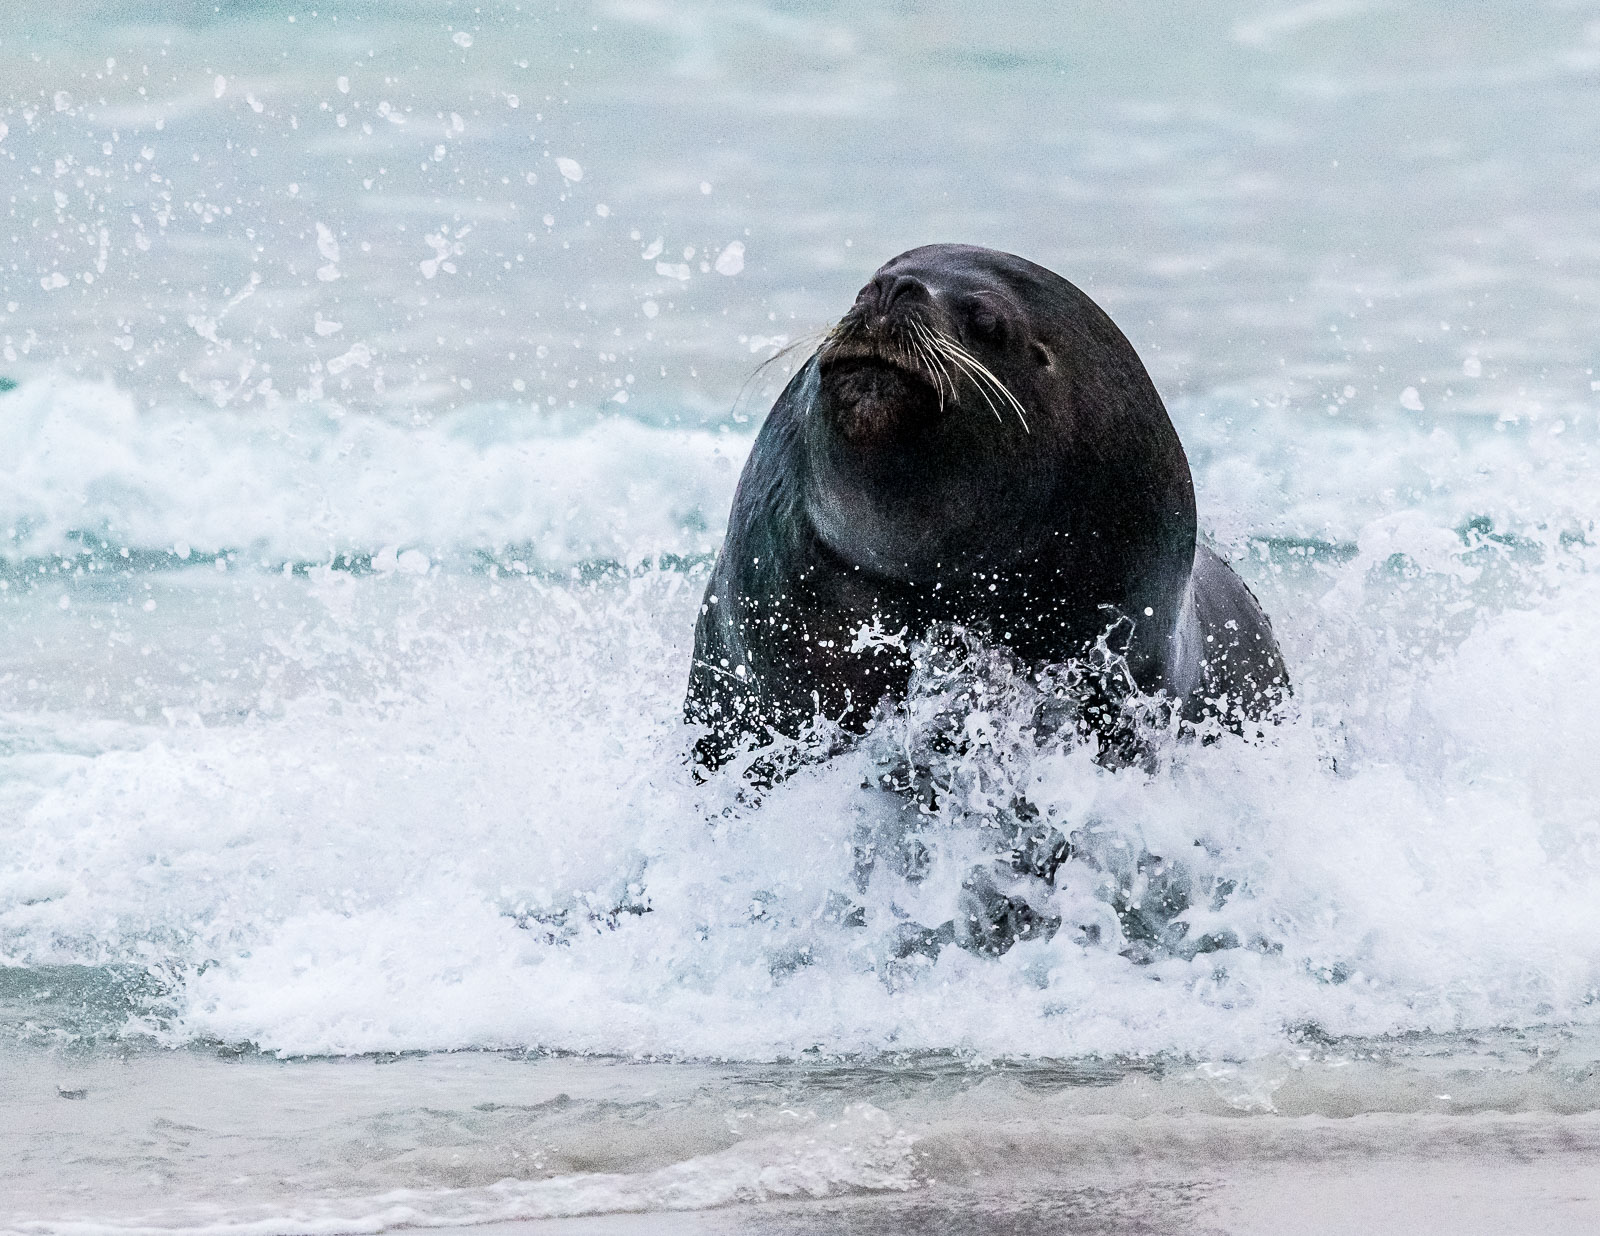 Bull sea lion emerging from the sea after a king penguin.   Nikon D500 300mm f4. 1/1000sec f5 ISO 3200